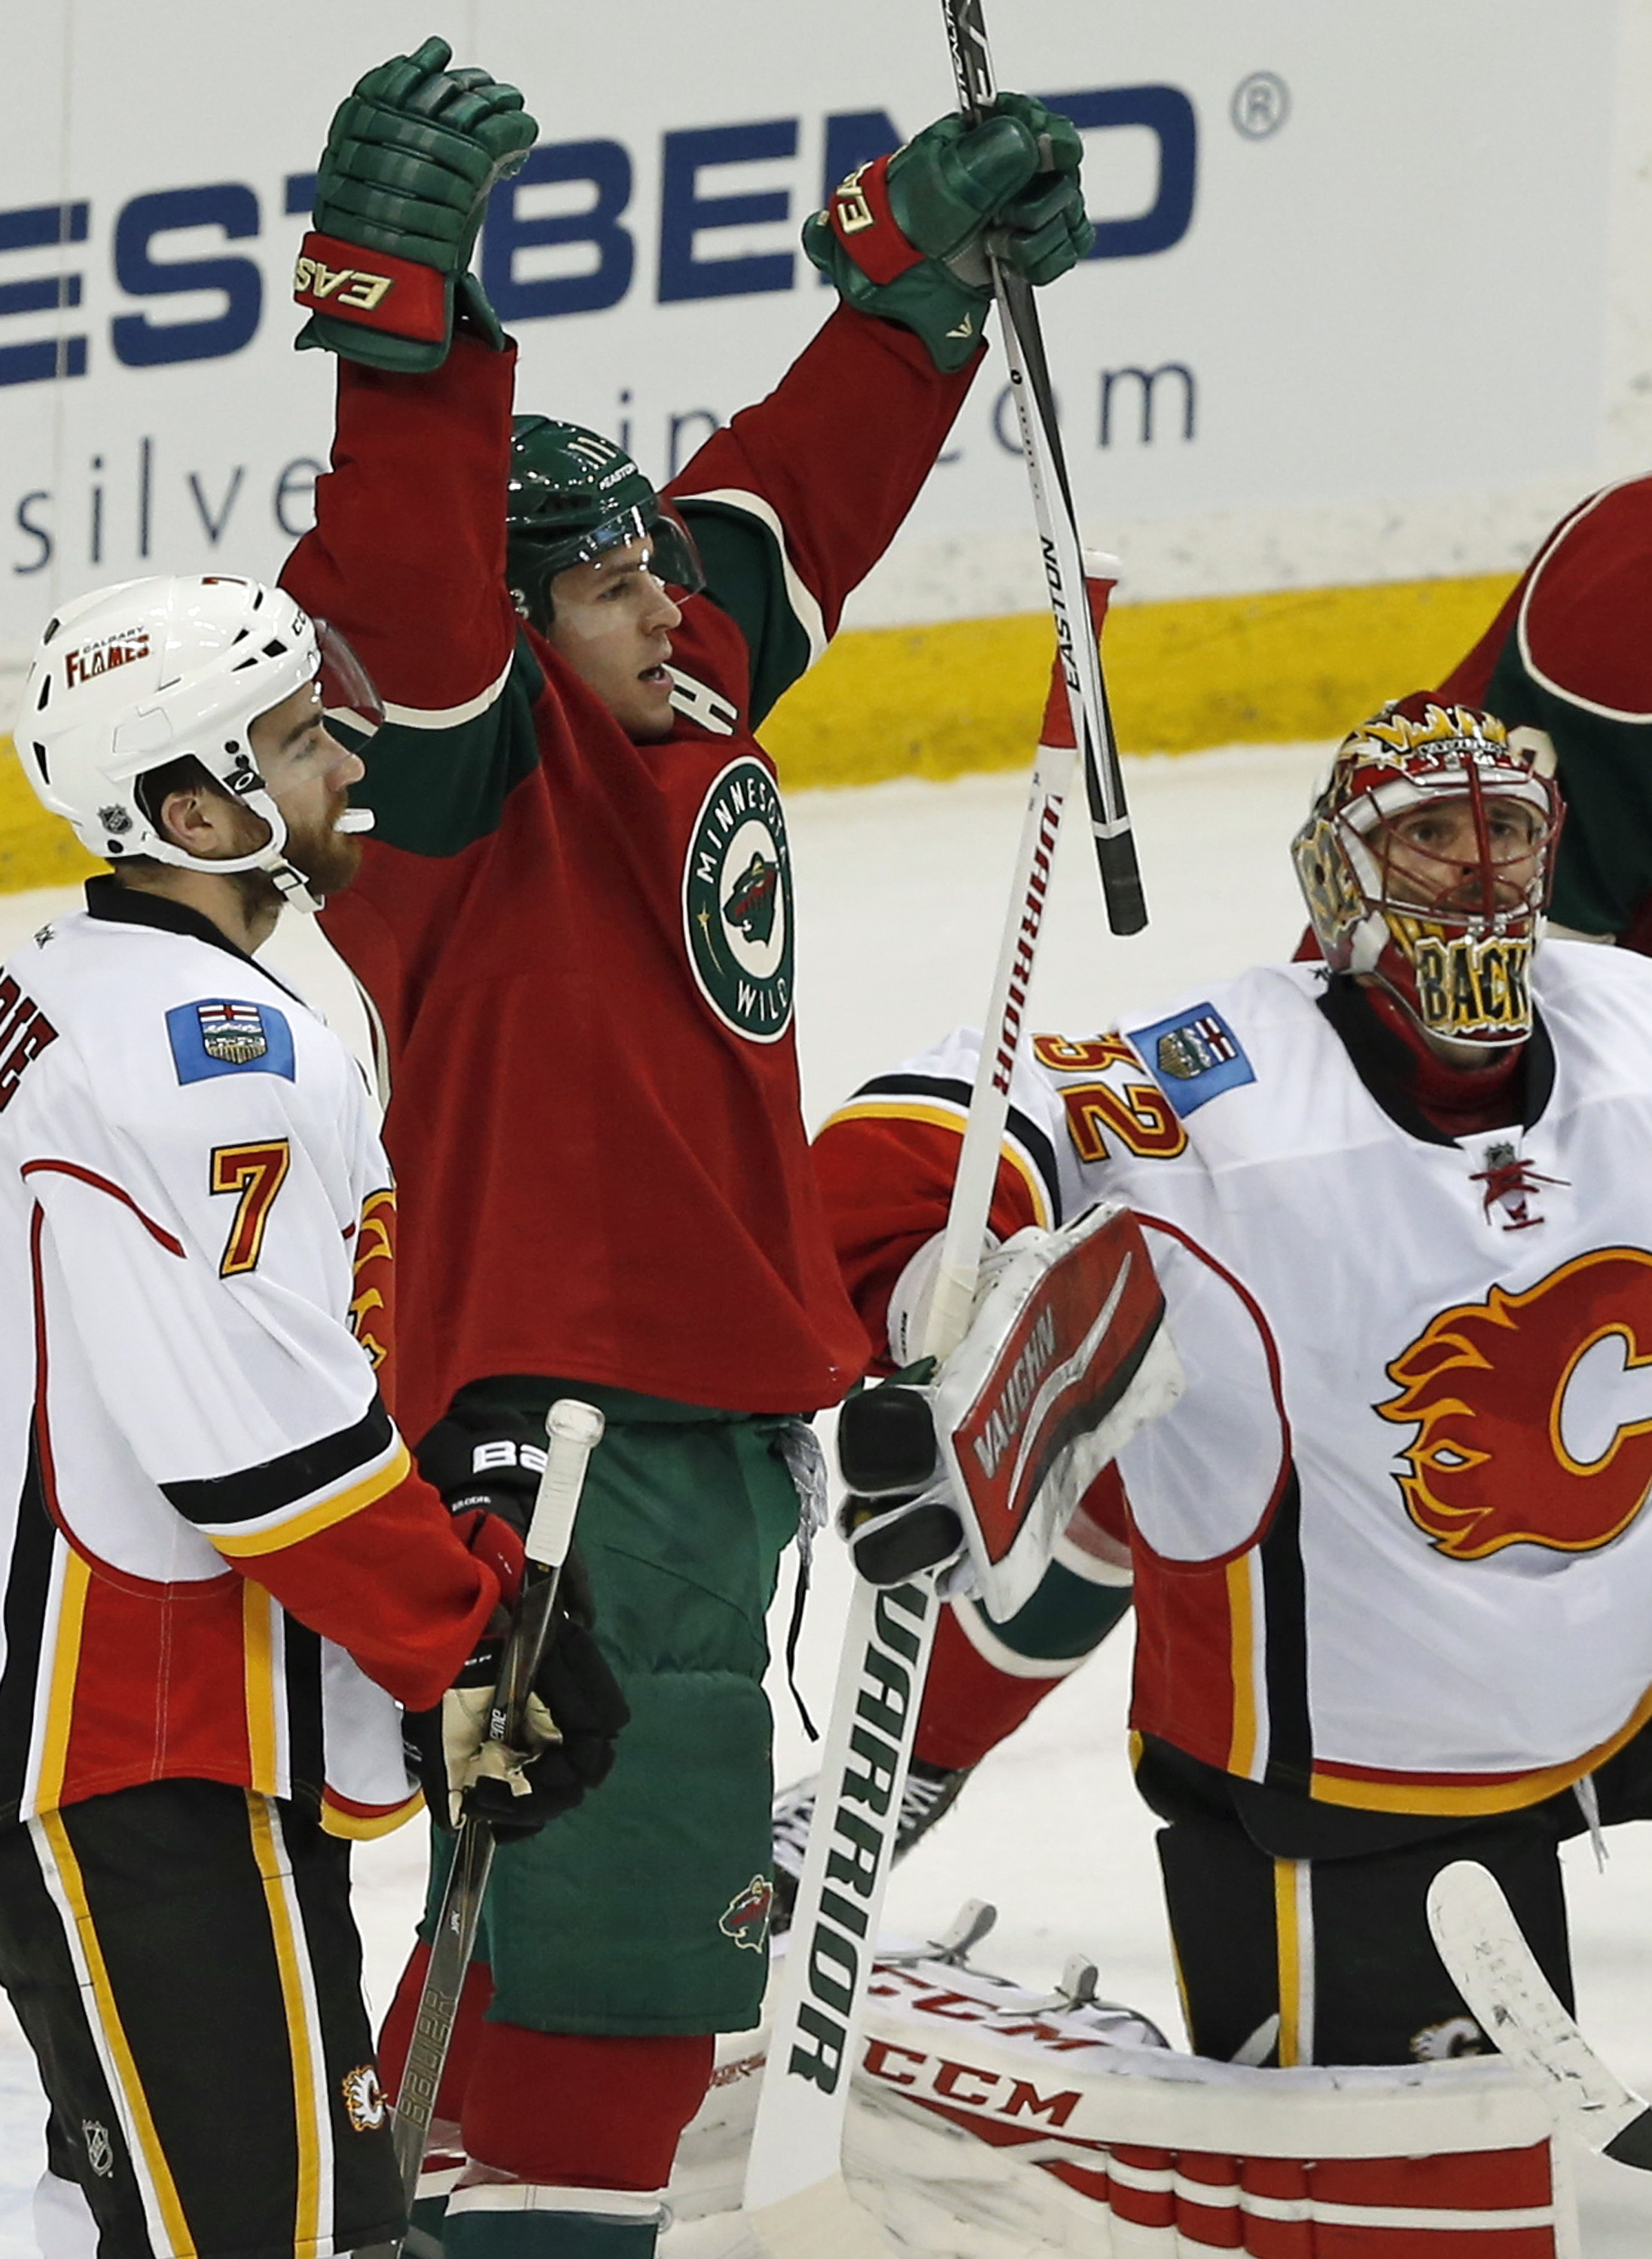 Minnesota Wilds Zach Parise, center, celebrates his third goal for the hat trick against Calgary Flames goalie Niklas Backstrom, right, of Finland in the first period of an NHL hockey game, Thursday, March 24, 2016, in St. Paul, Minn. (AP Photo/Jim Mone)